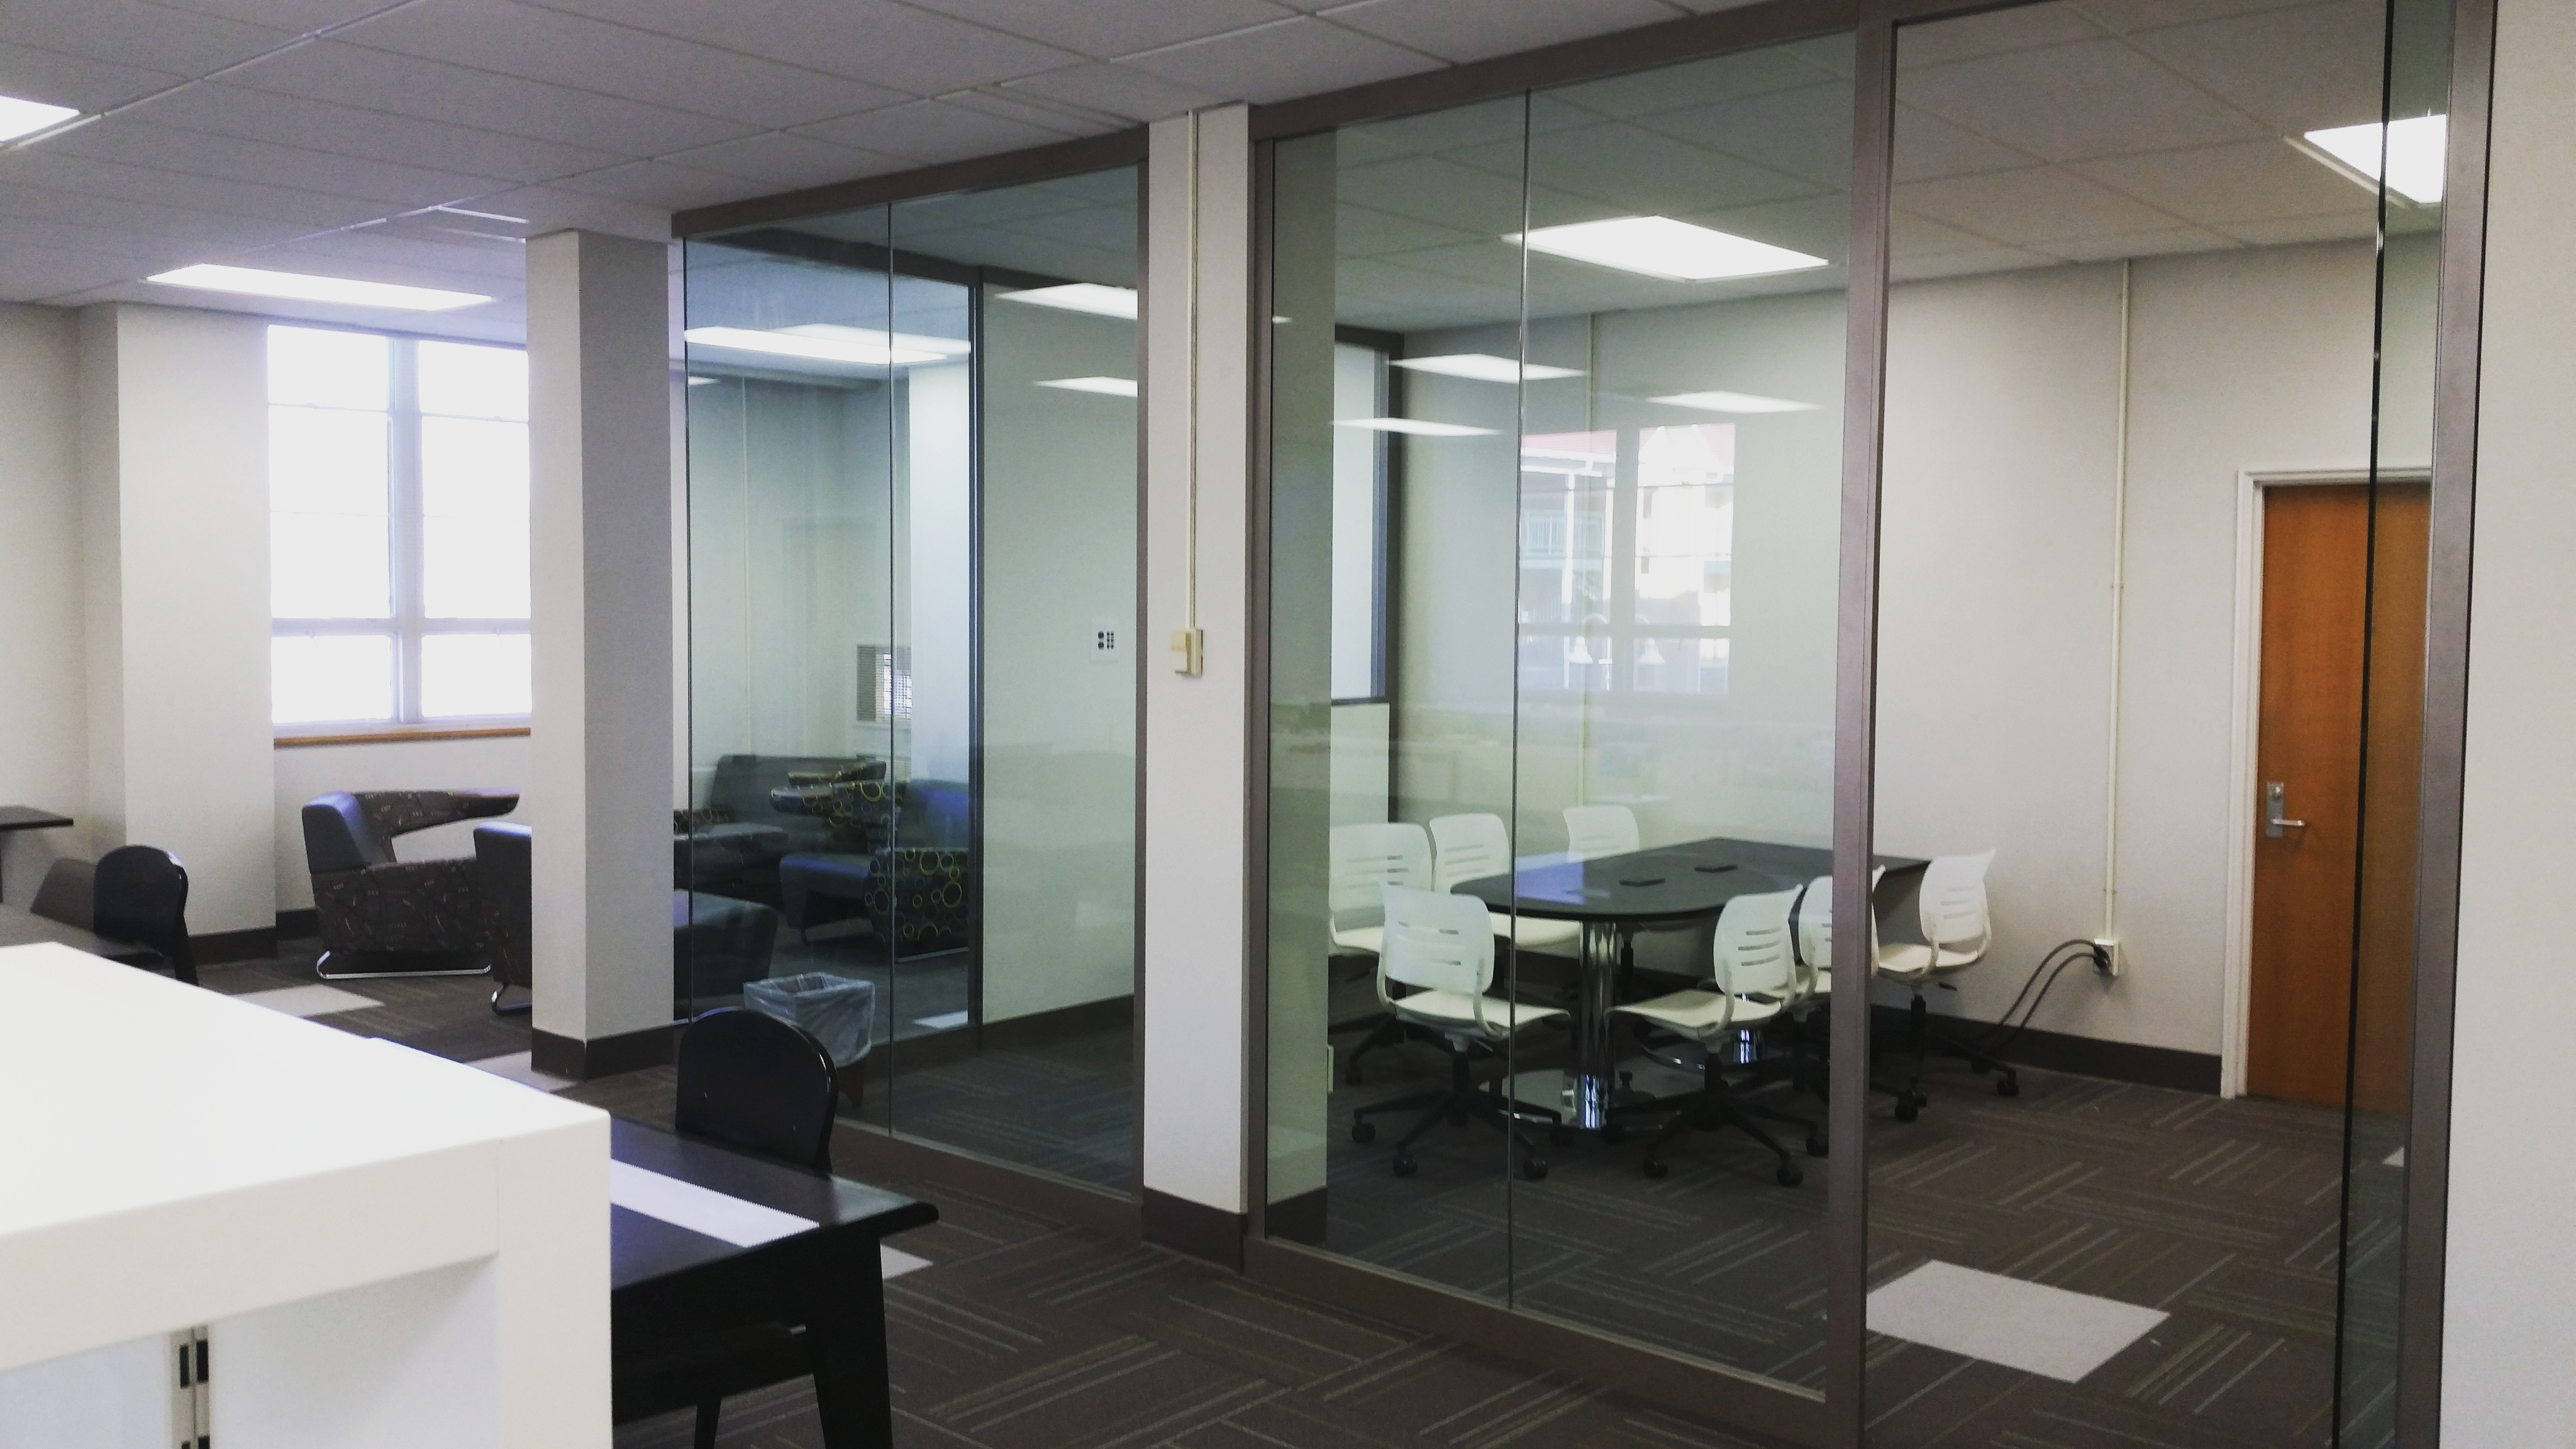 Nash Library's glass-walled classroom in music pocket library with table and chairs